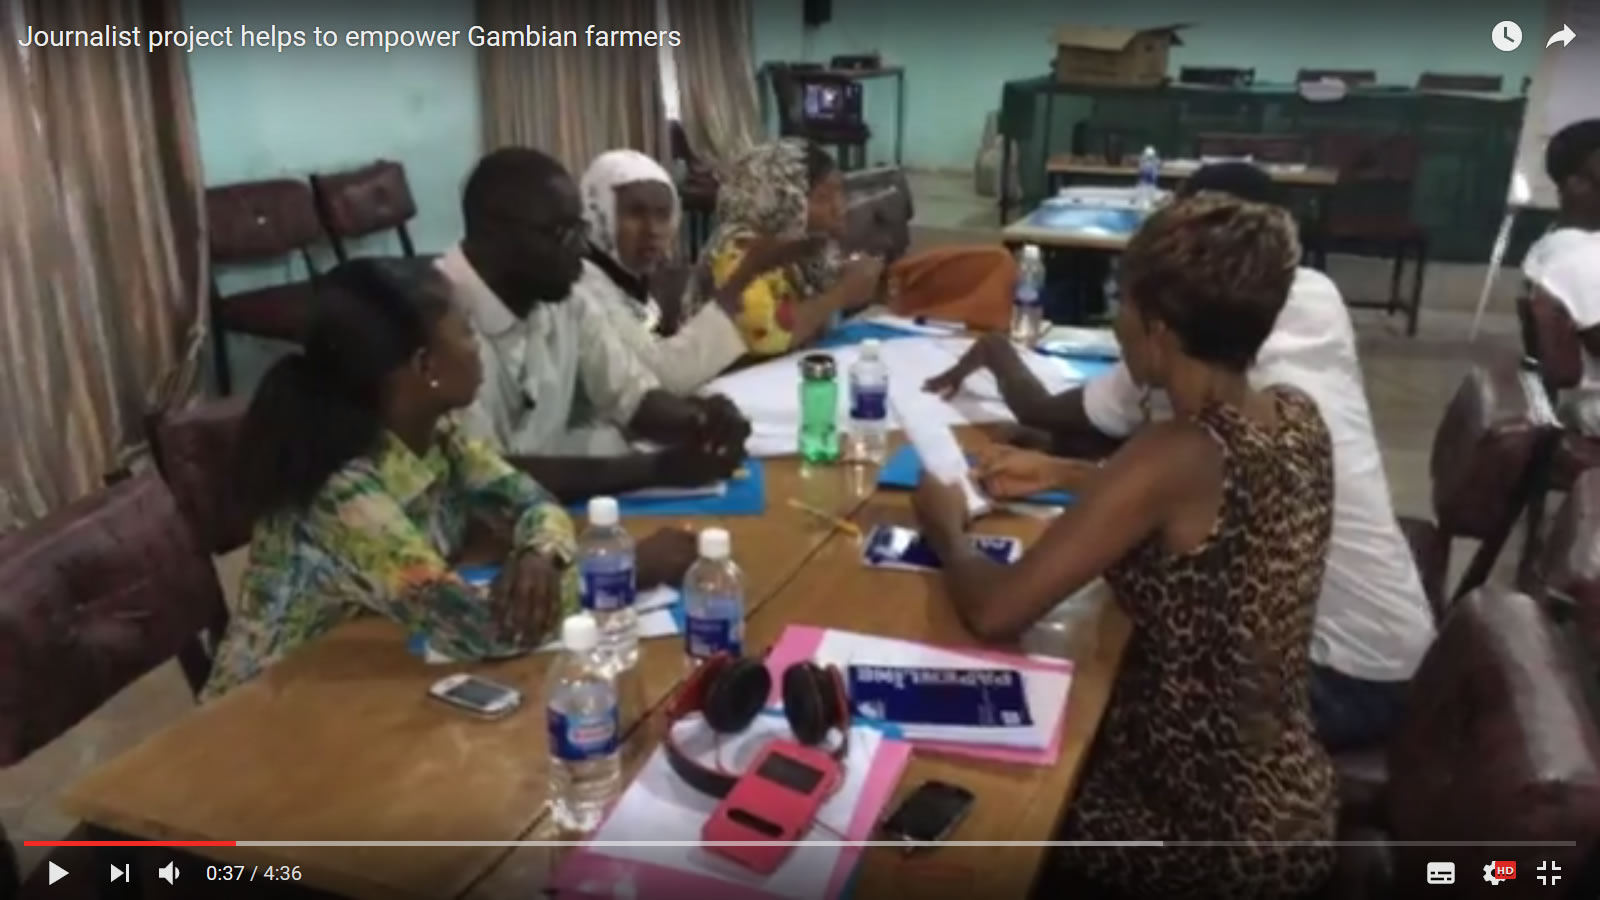 Video Om Gambia-projektet